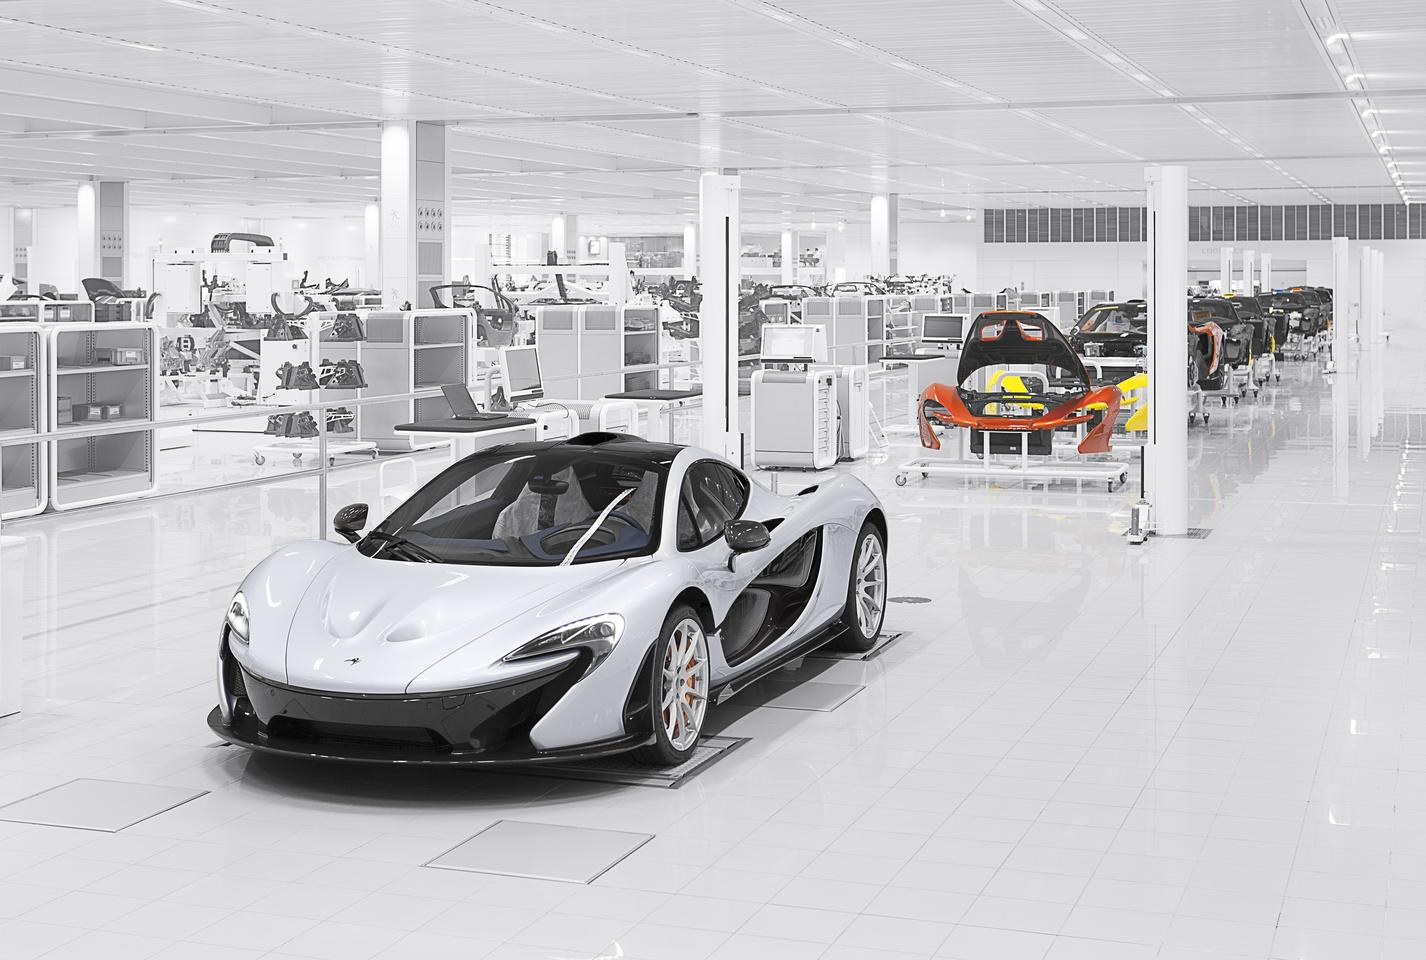 The McLaren P1 can do 0 to 100 km.h (62 mph) in 2.8 seconds